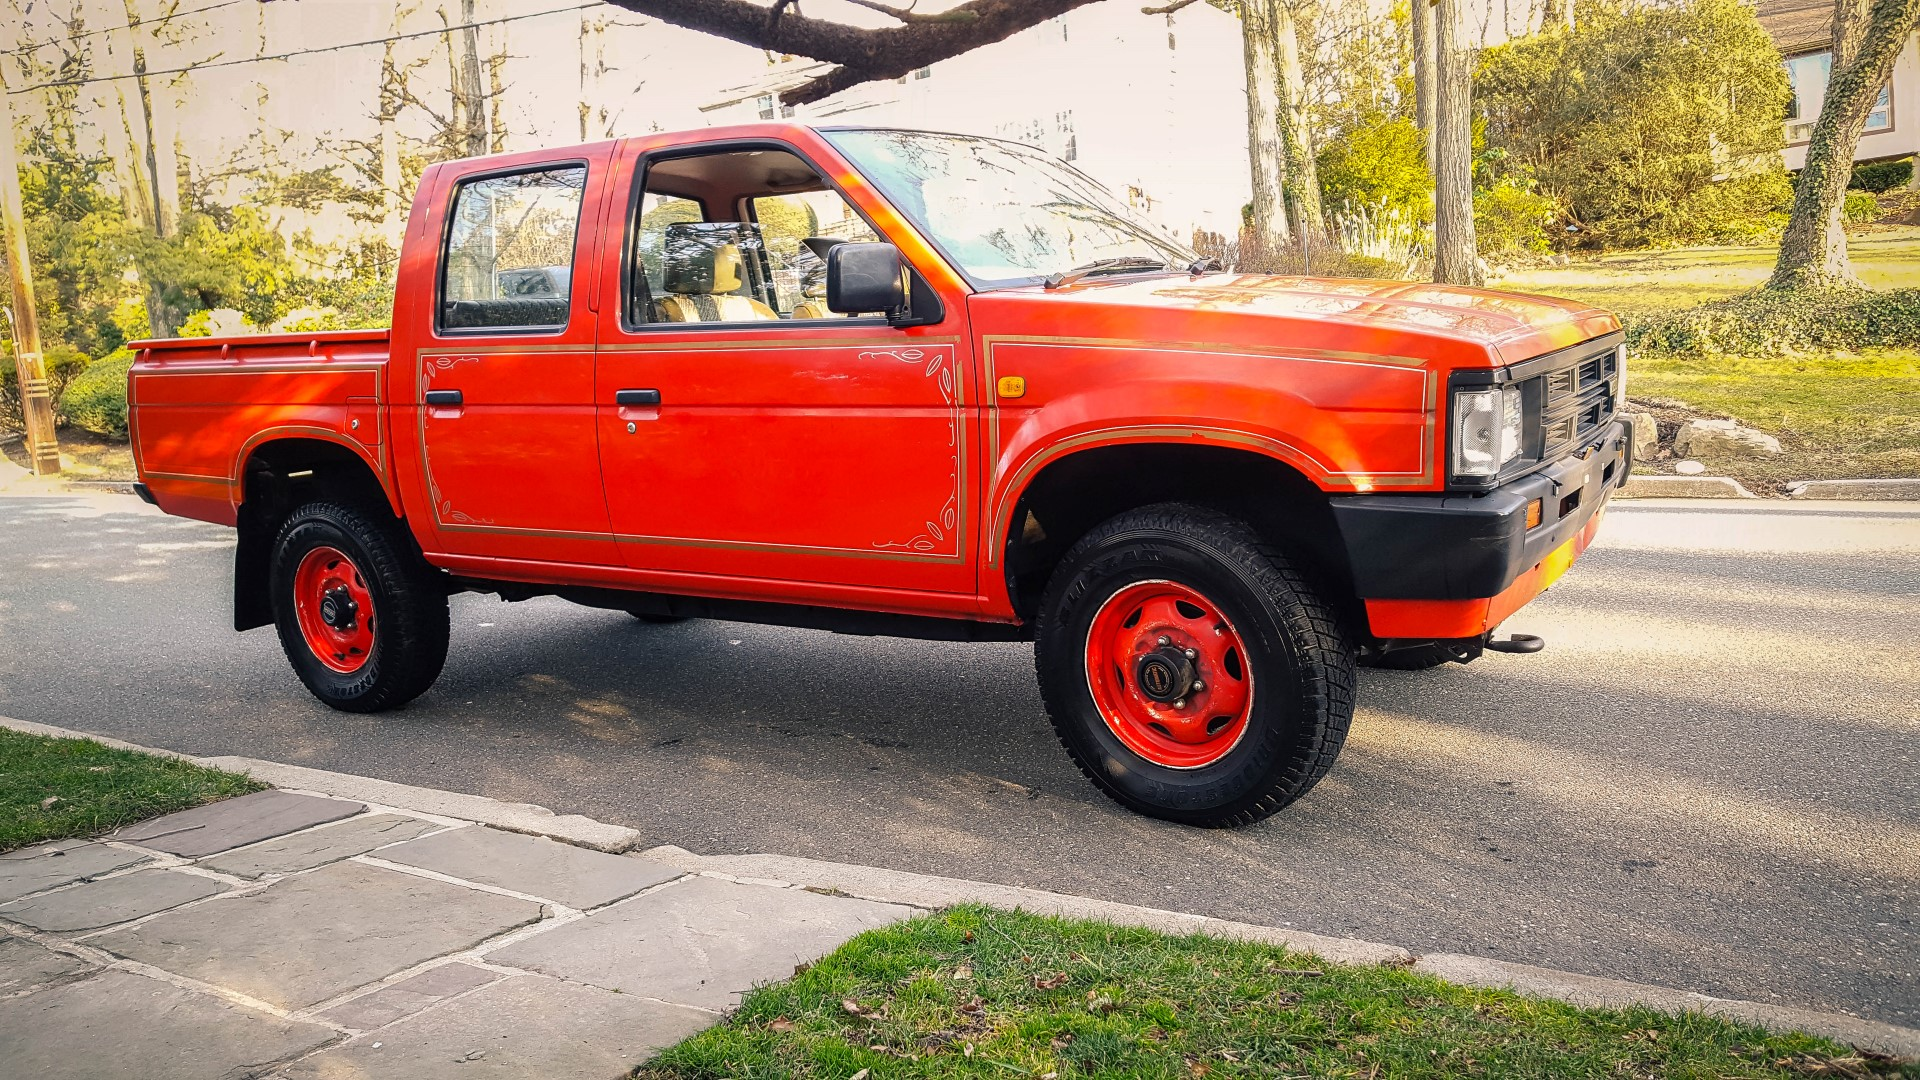 Twx Albums Nissan Hardbody King Cab Xe Picture Freezeplug together with Gear Ratios besides Maxresdefault besides Diagrama De Vacio Nissan Z additionally Nissan X Pickup Truck Hilux Sr Like Toyota Datsun Longbed No Reserve. on 1985 nissan pickup engine